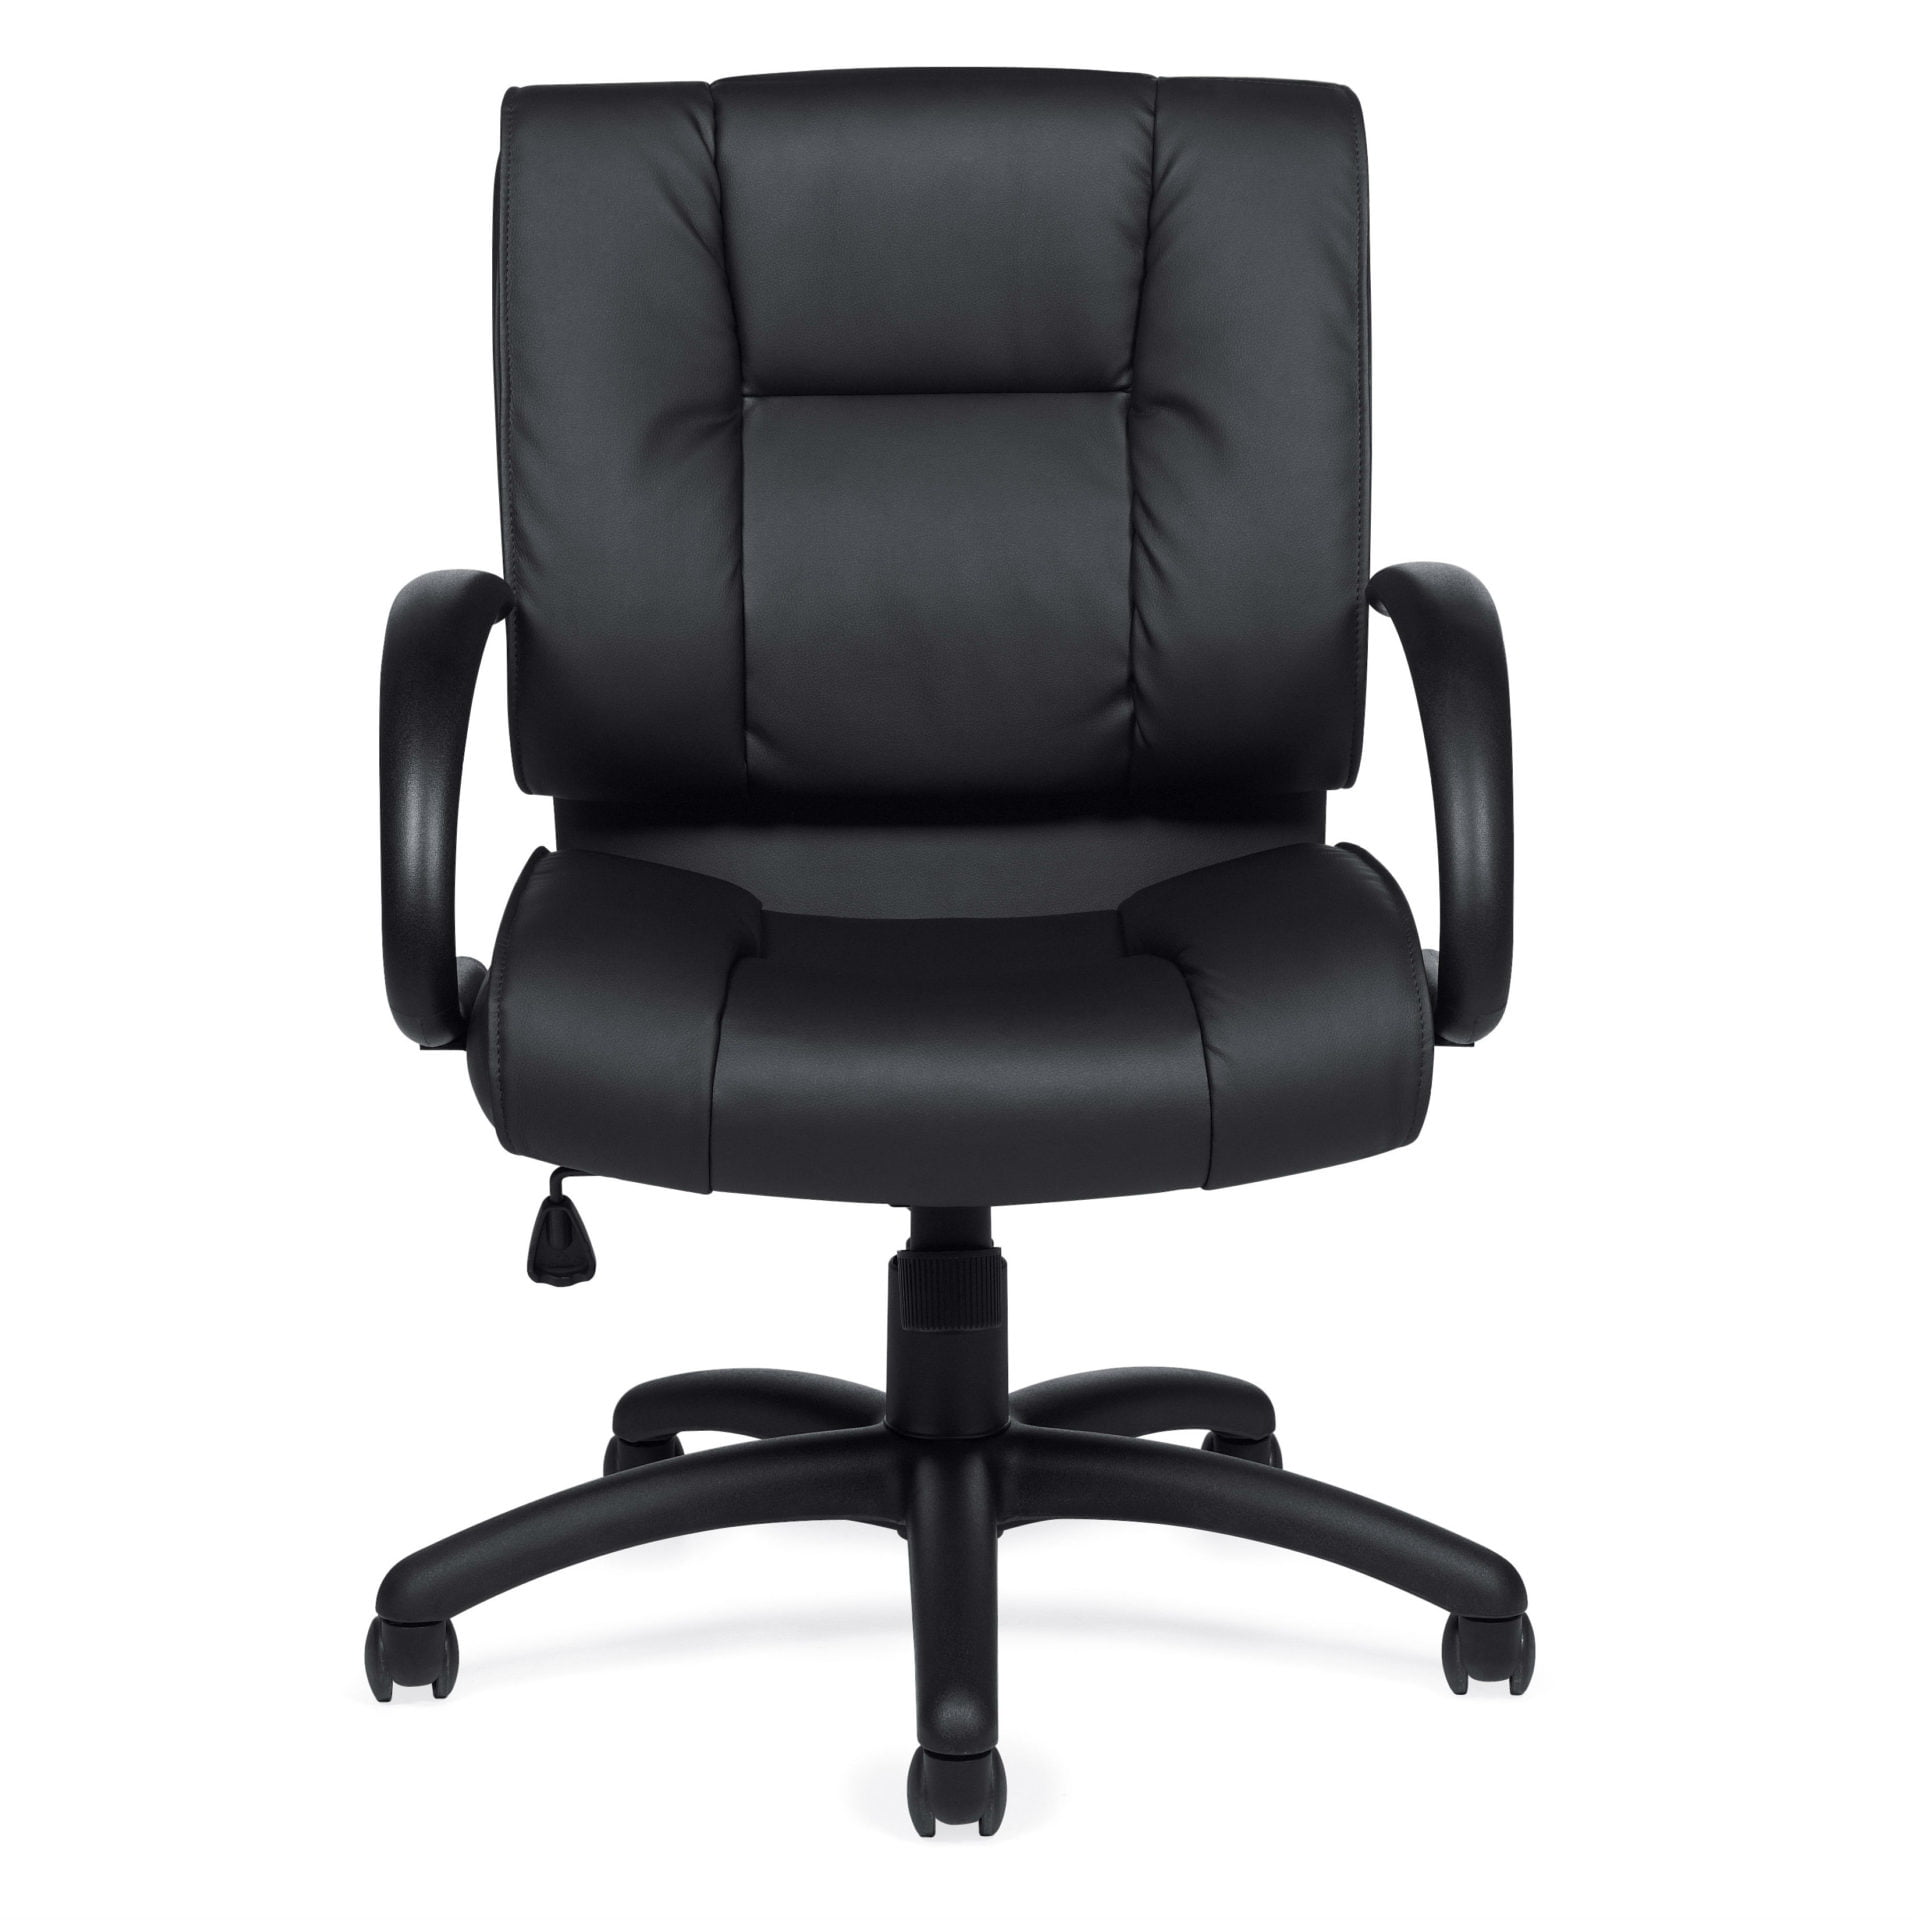 Offices To Go 2701 Luxhide Executive Chair With Arms